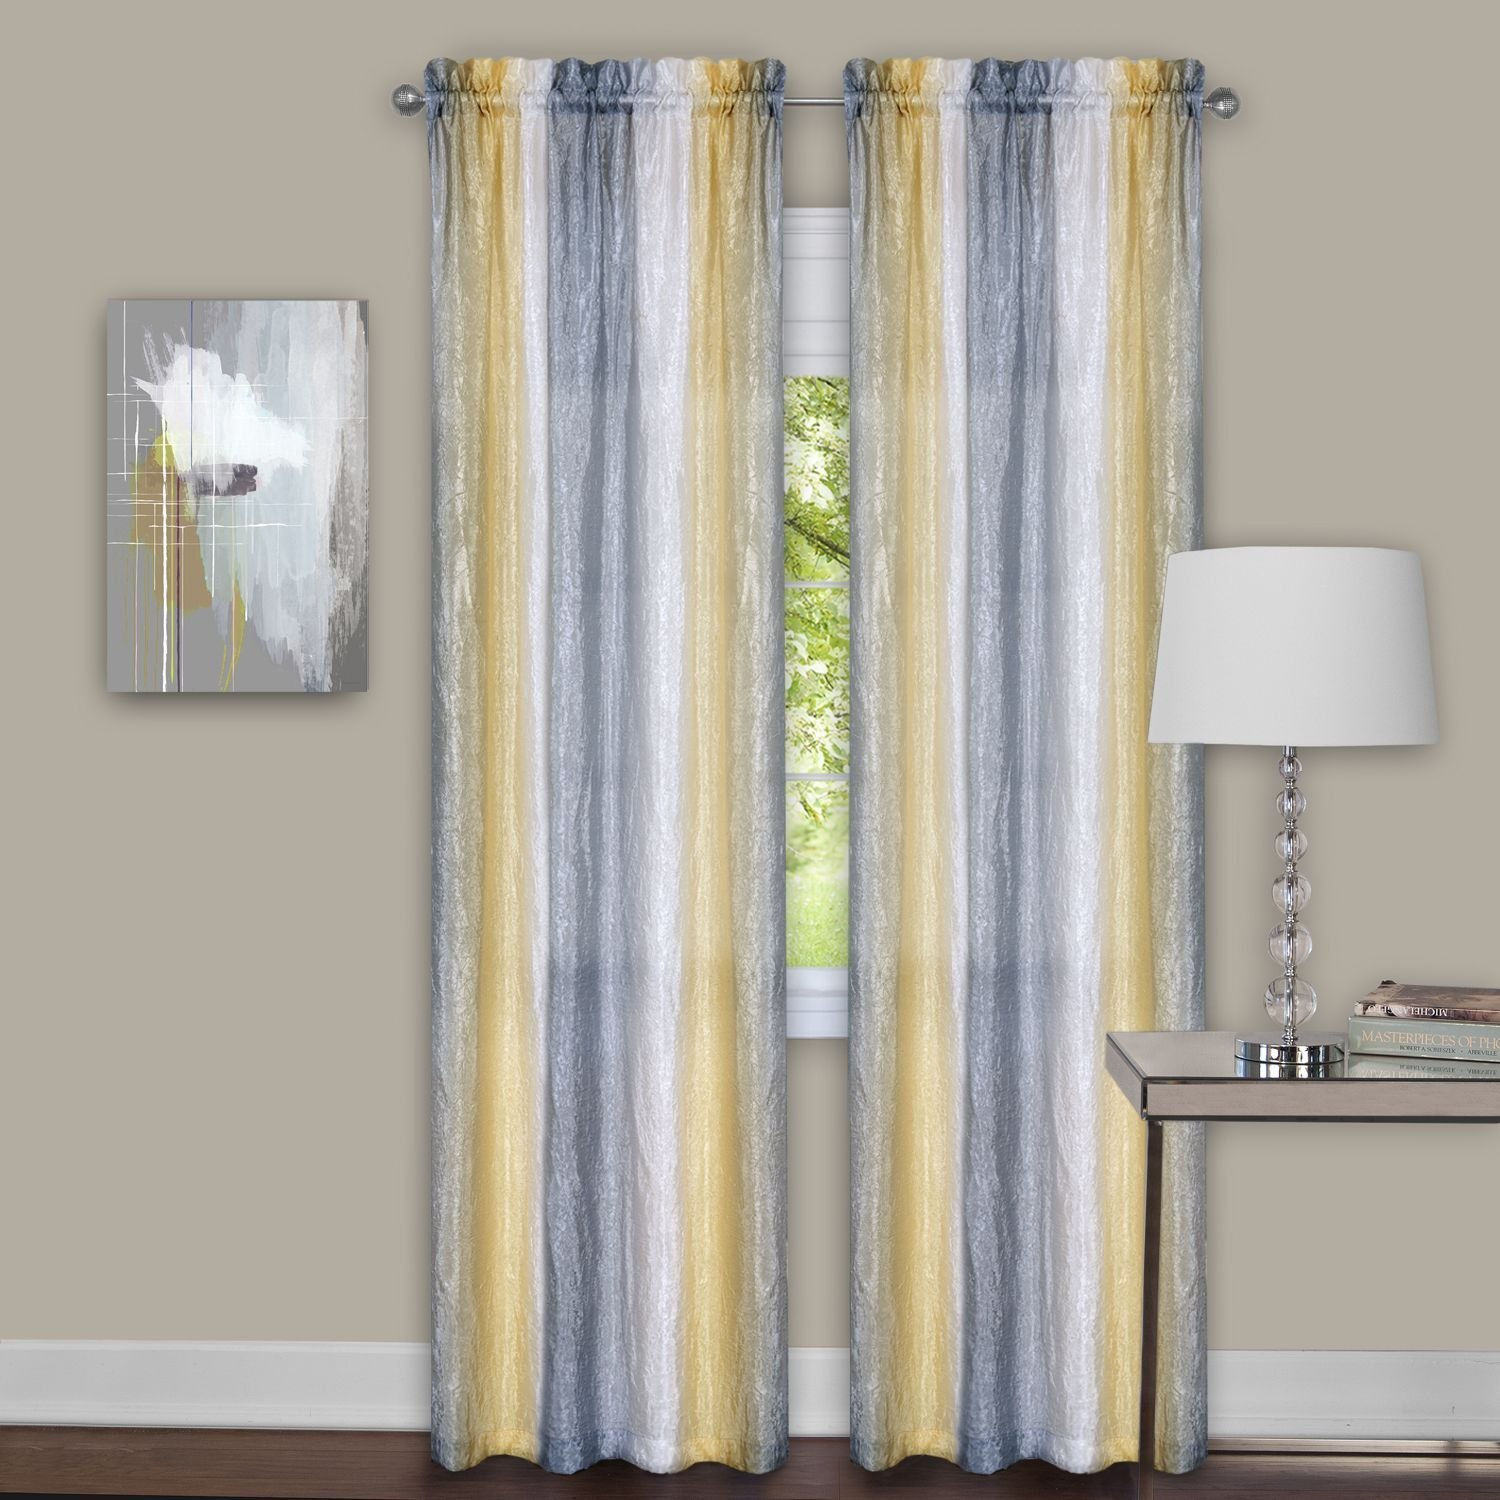 Kitchen Curtains Yellow And Gray: Yellow And Grey Window Curtain Panels